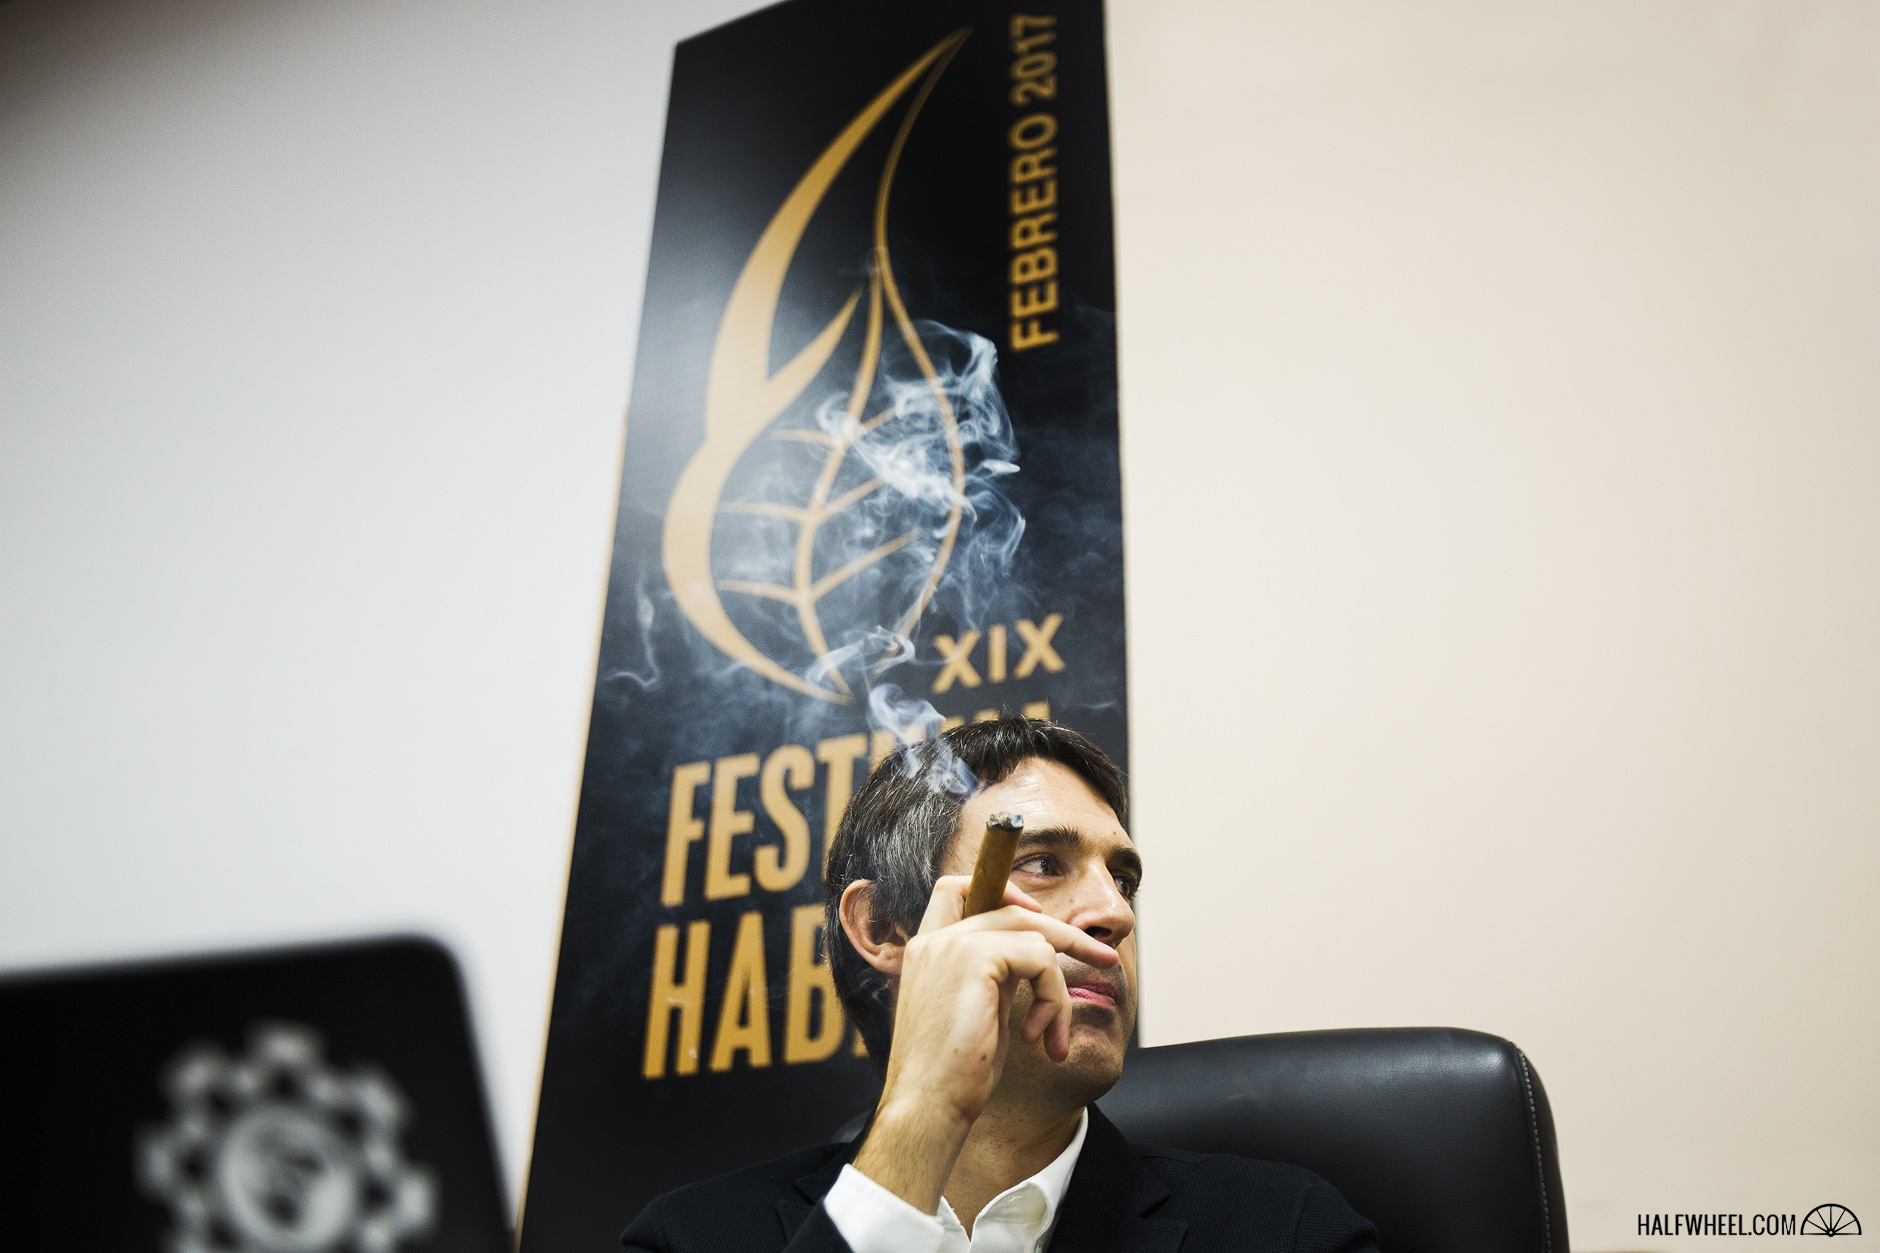 Festival del Habano XIX - Day 1 16th International Habanosommelier competition 1